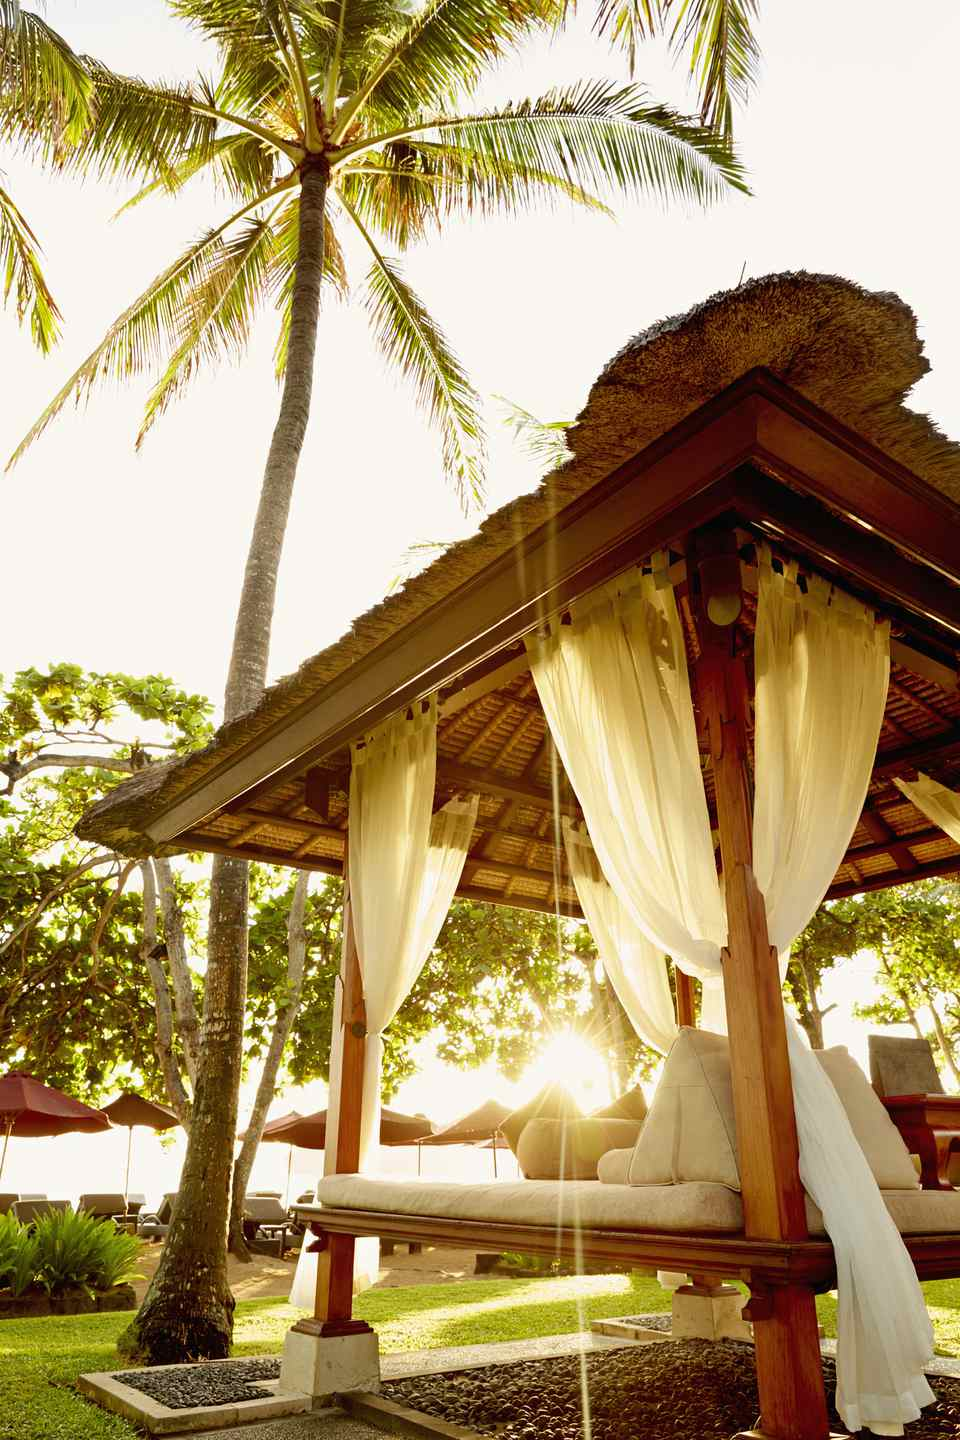 An outdoors Bali-style bed.